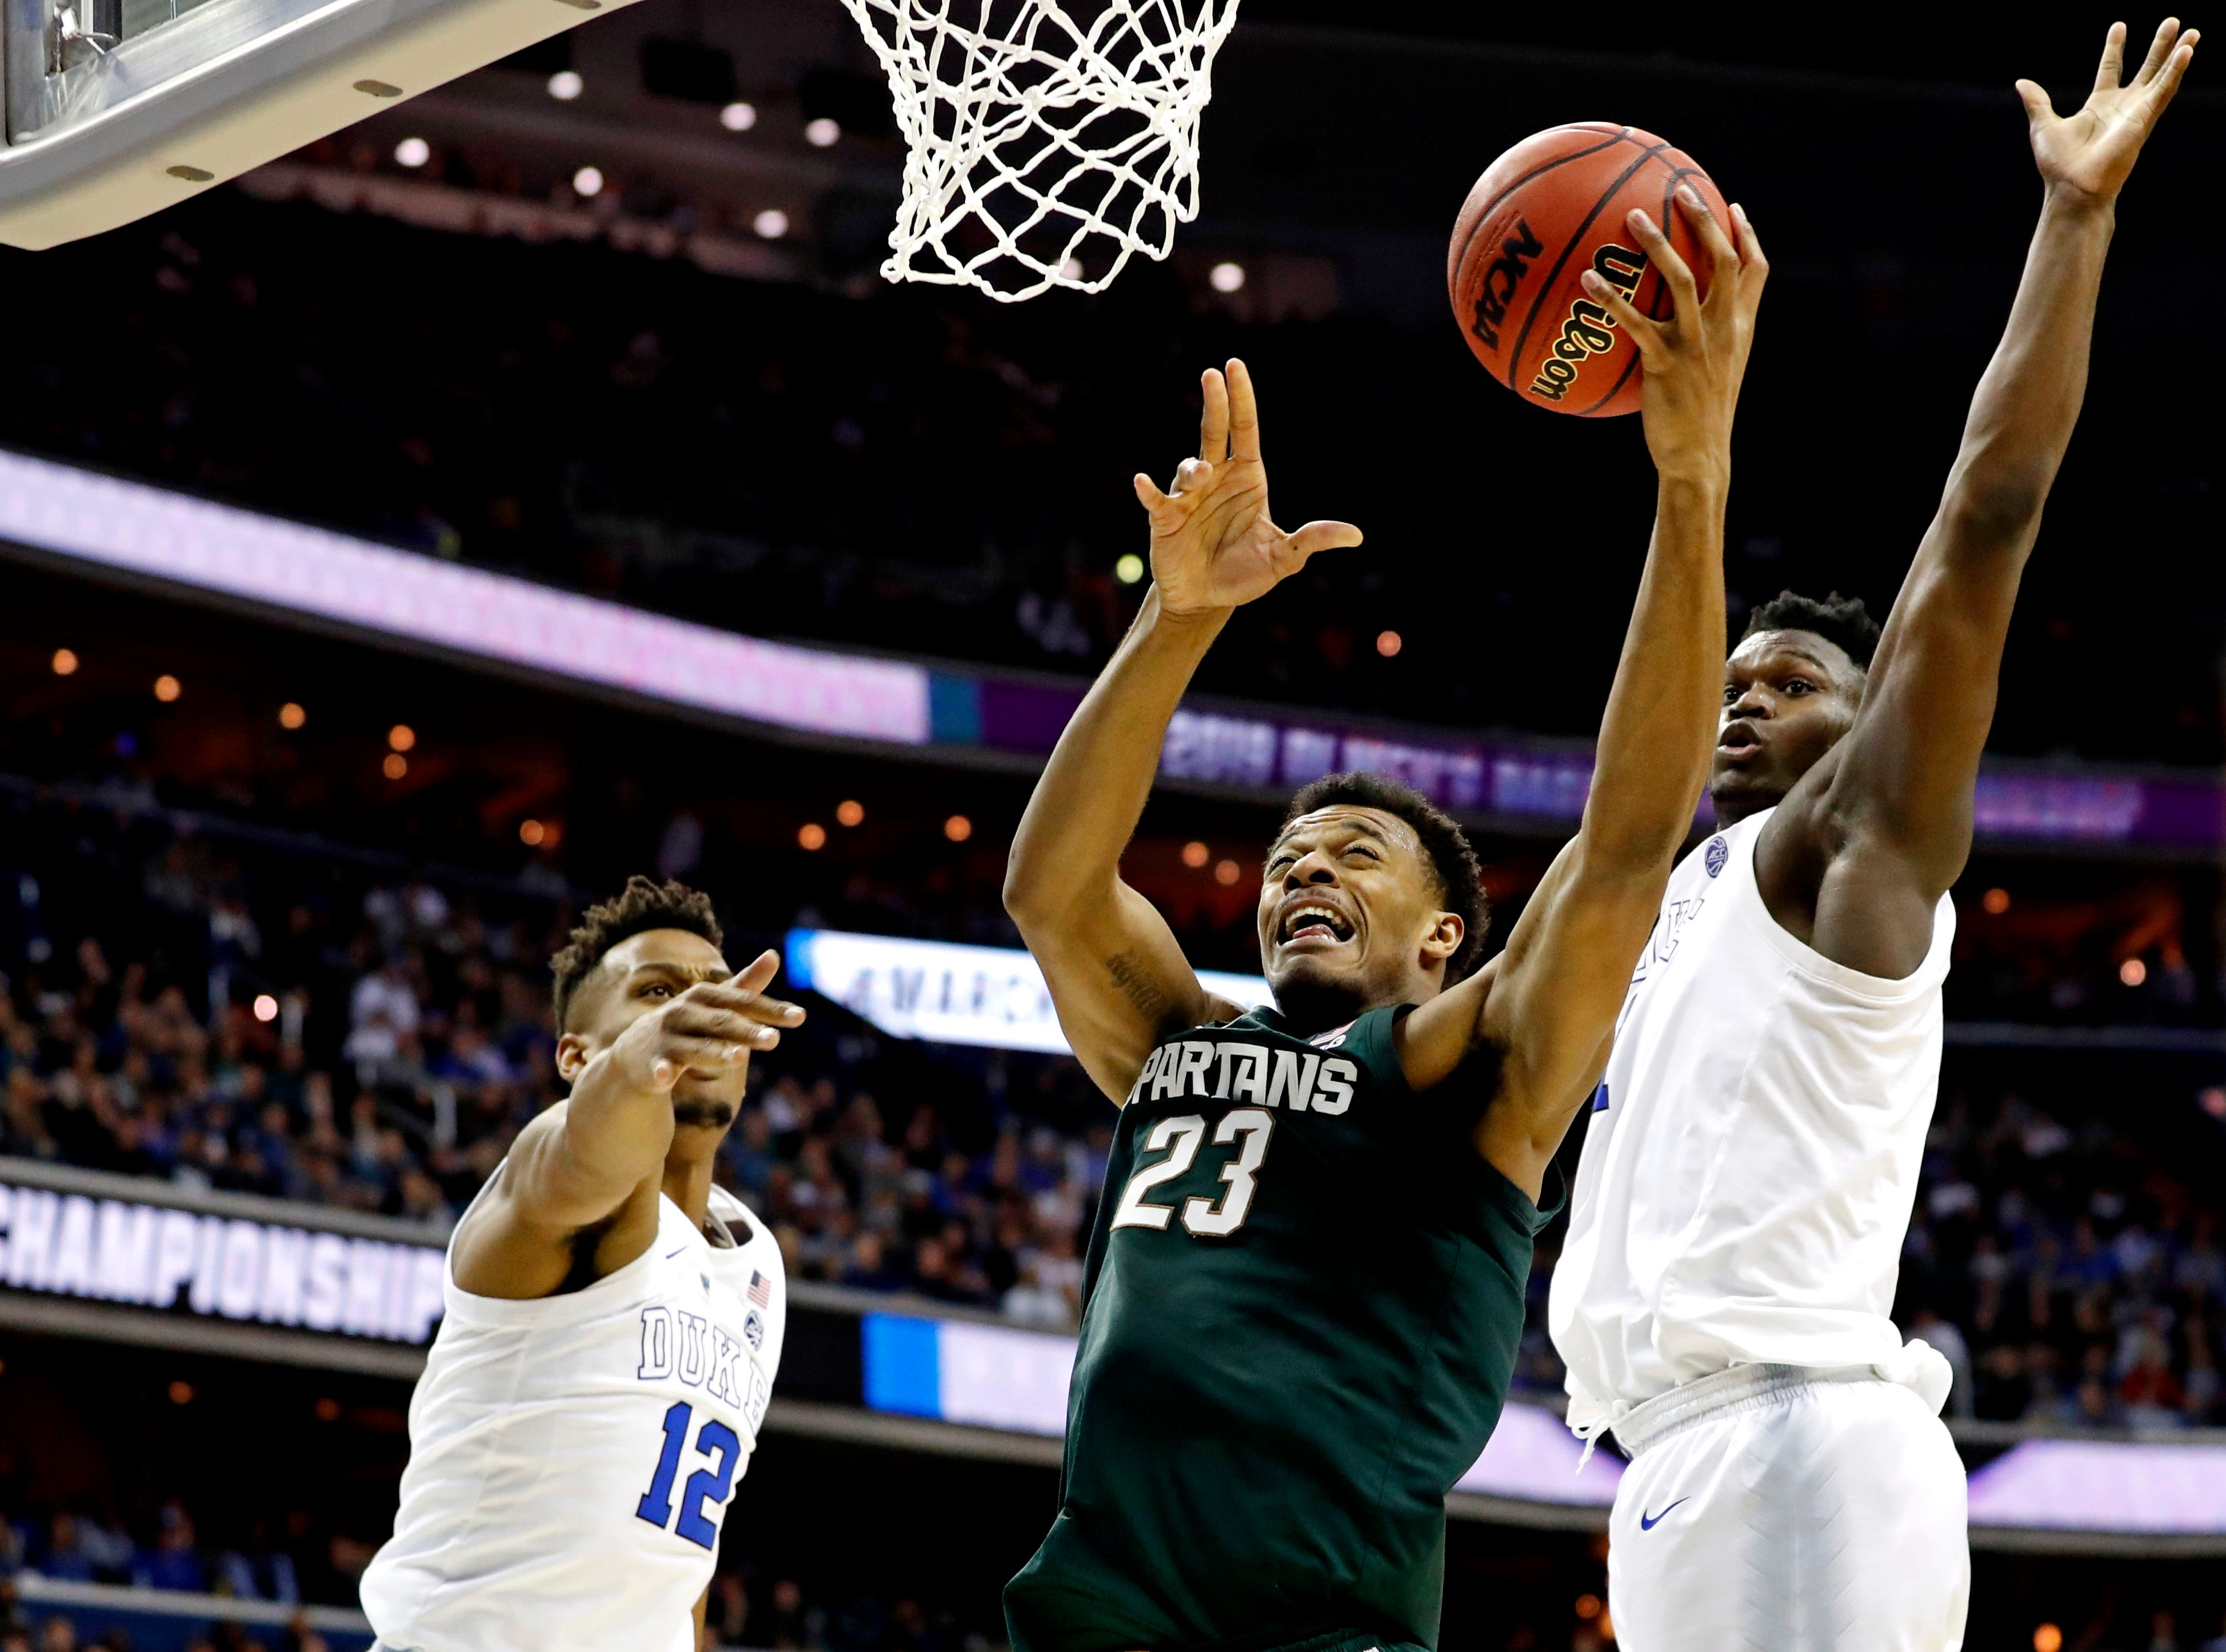 Mar 31, 2019; Washington, DC, USA; Michigan State Spartans forward Xavier Tillman (23) shoots the ball against Duke Blue Devils forward Zion Williamson (1) during the second half in the championship game of the east regional of the 2019 NCAA Tournament at Capital One Arena. Mandatory Credit: Geoff Burke-USA TODAY Sports